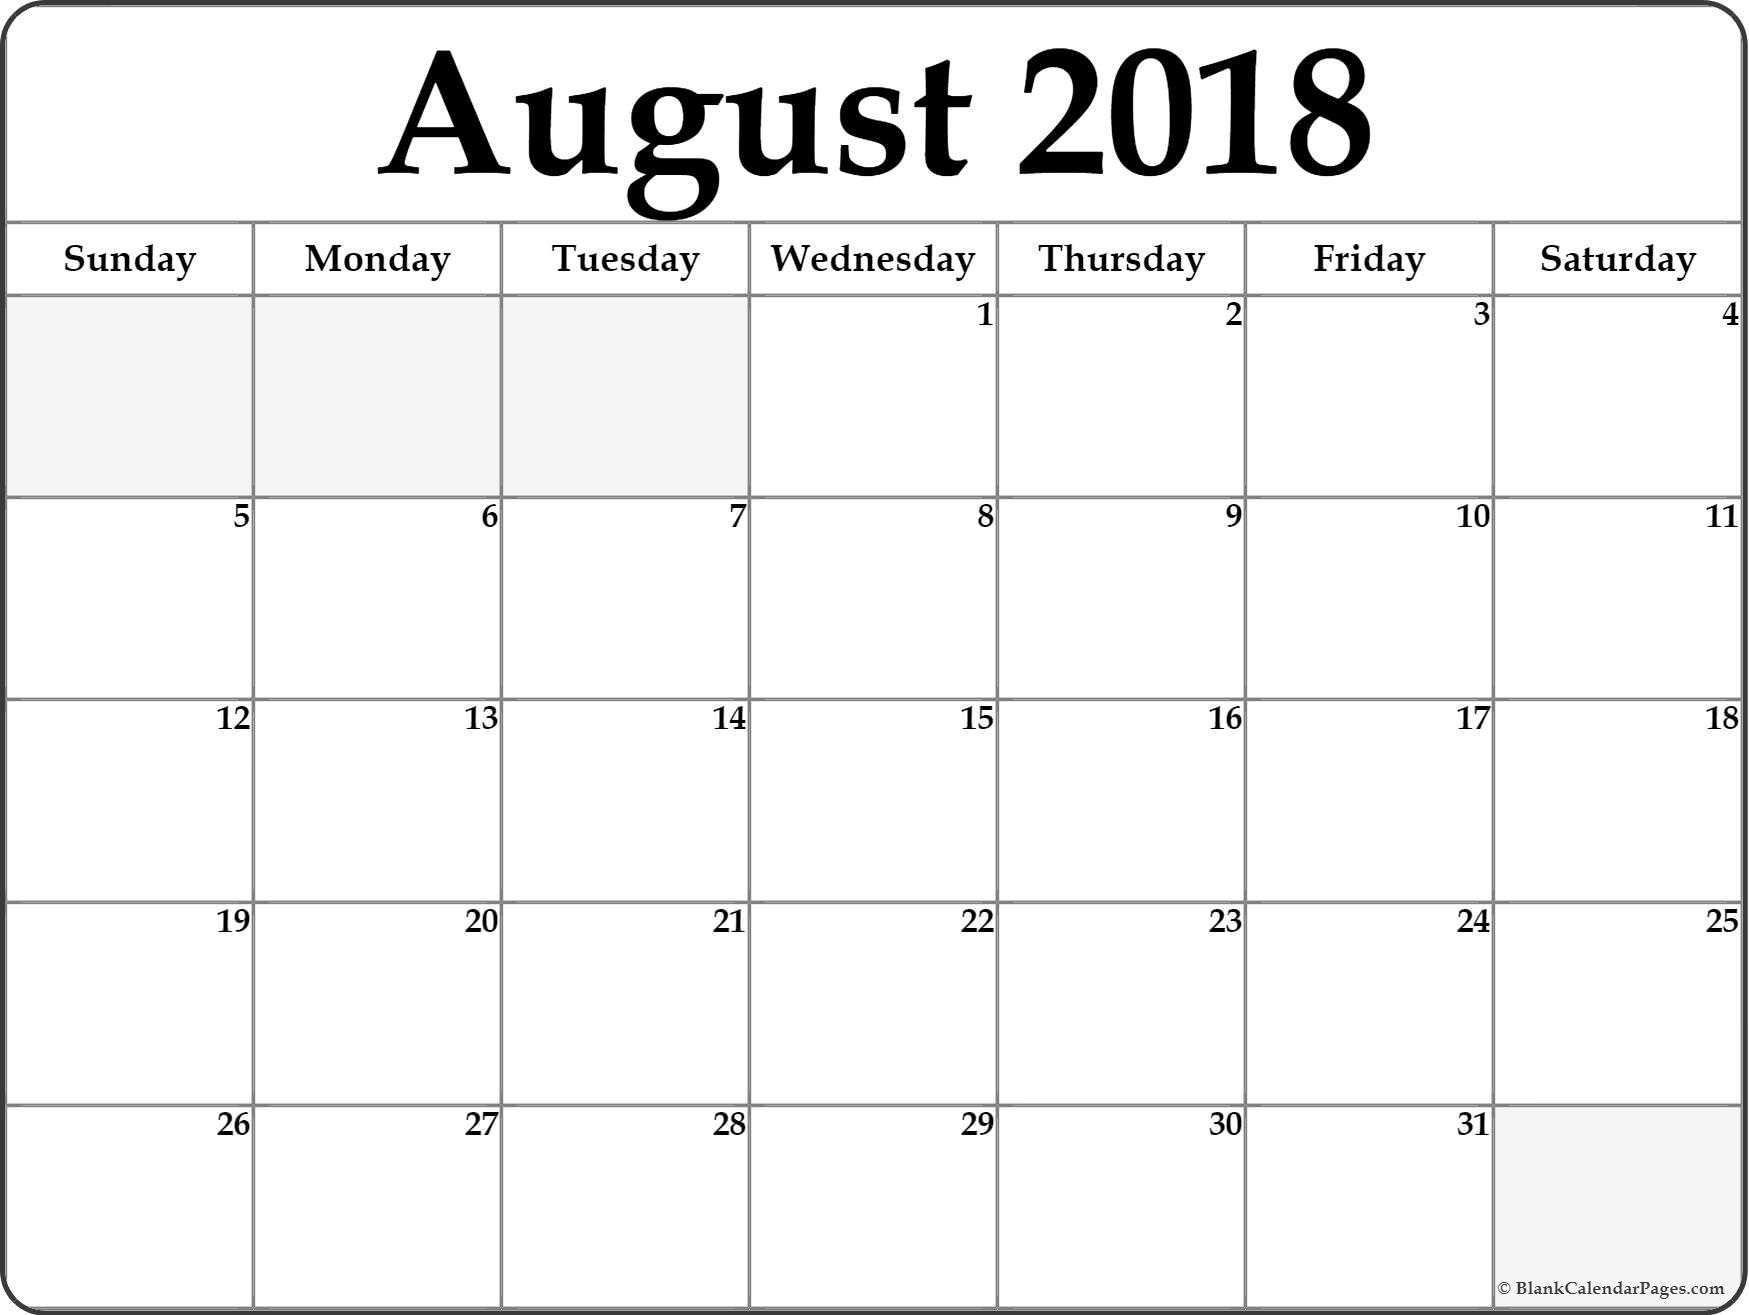 August 2018 Calendar | Free Printable Monthly Calendars with Blank Calendar Template For August